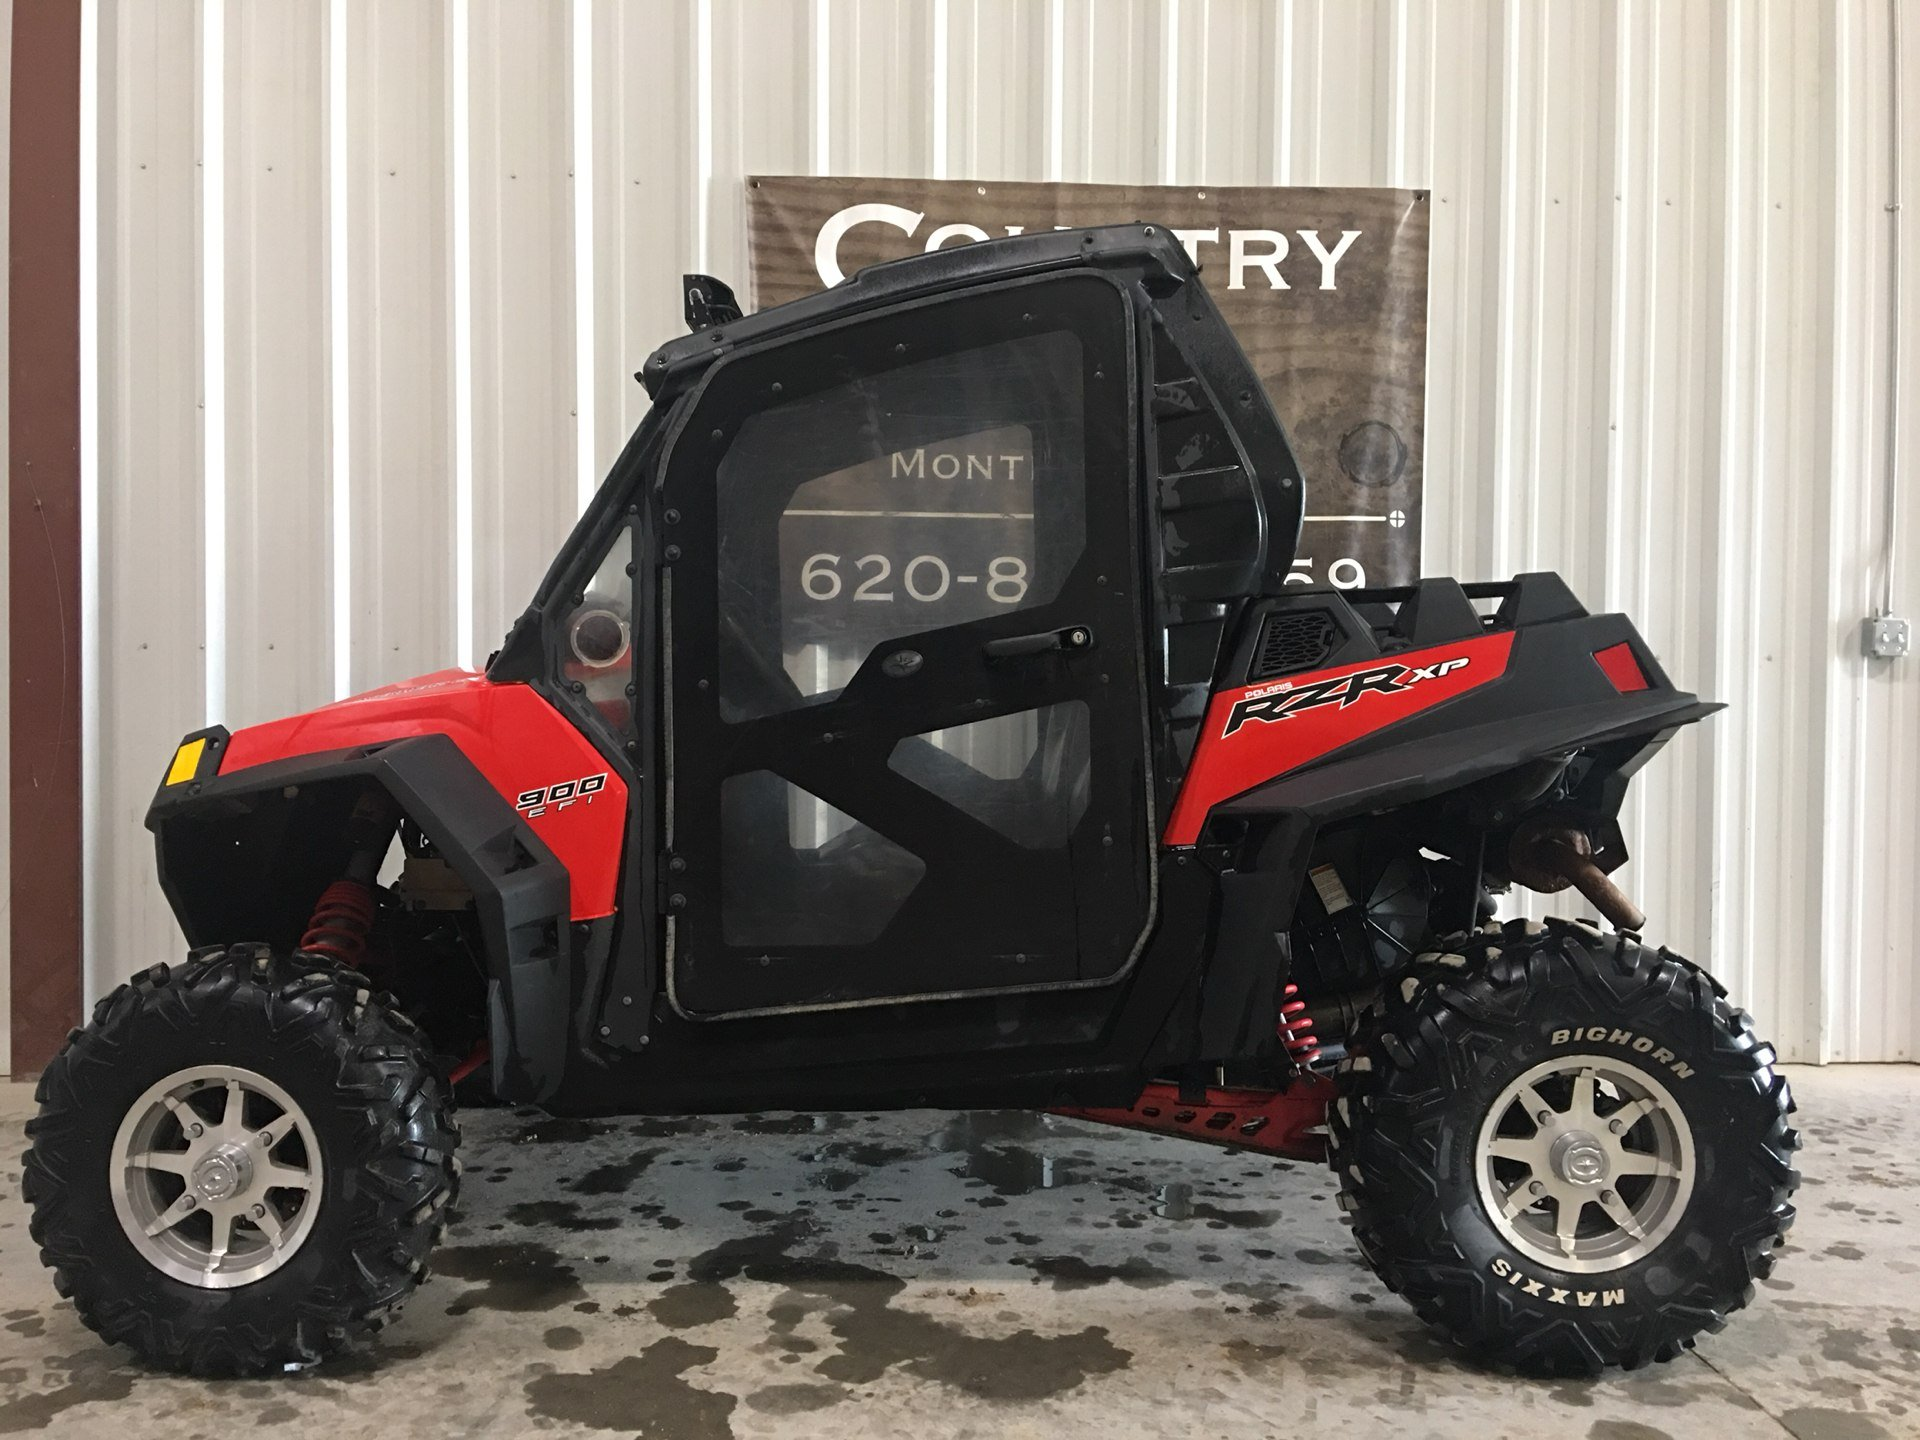 2013 Polaris RZR® XP 900 EFI in Montezuma, Kansas - Photo 1